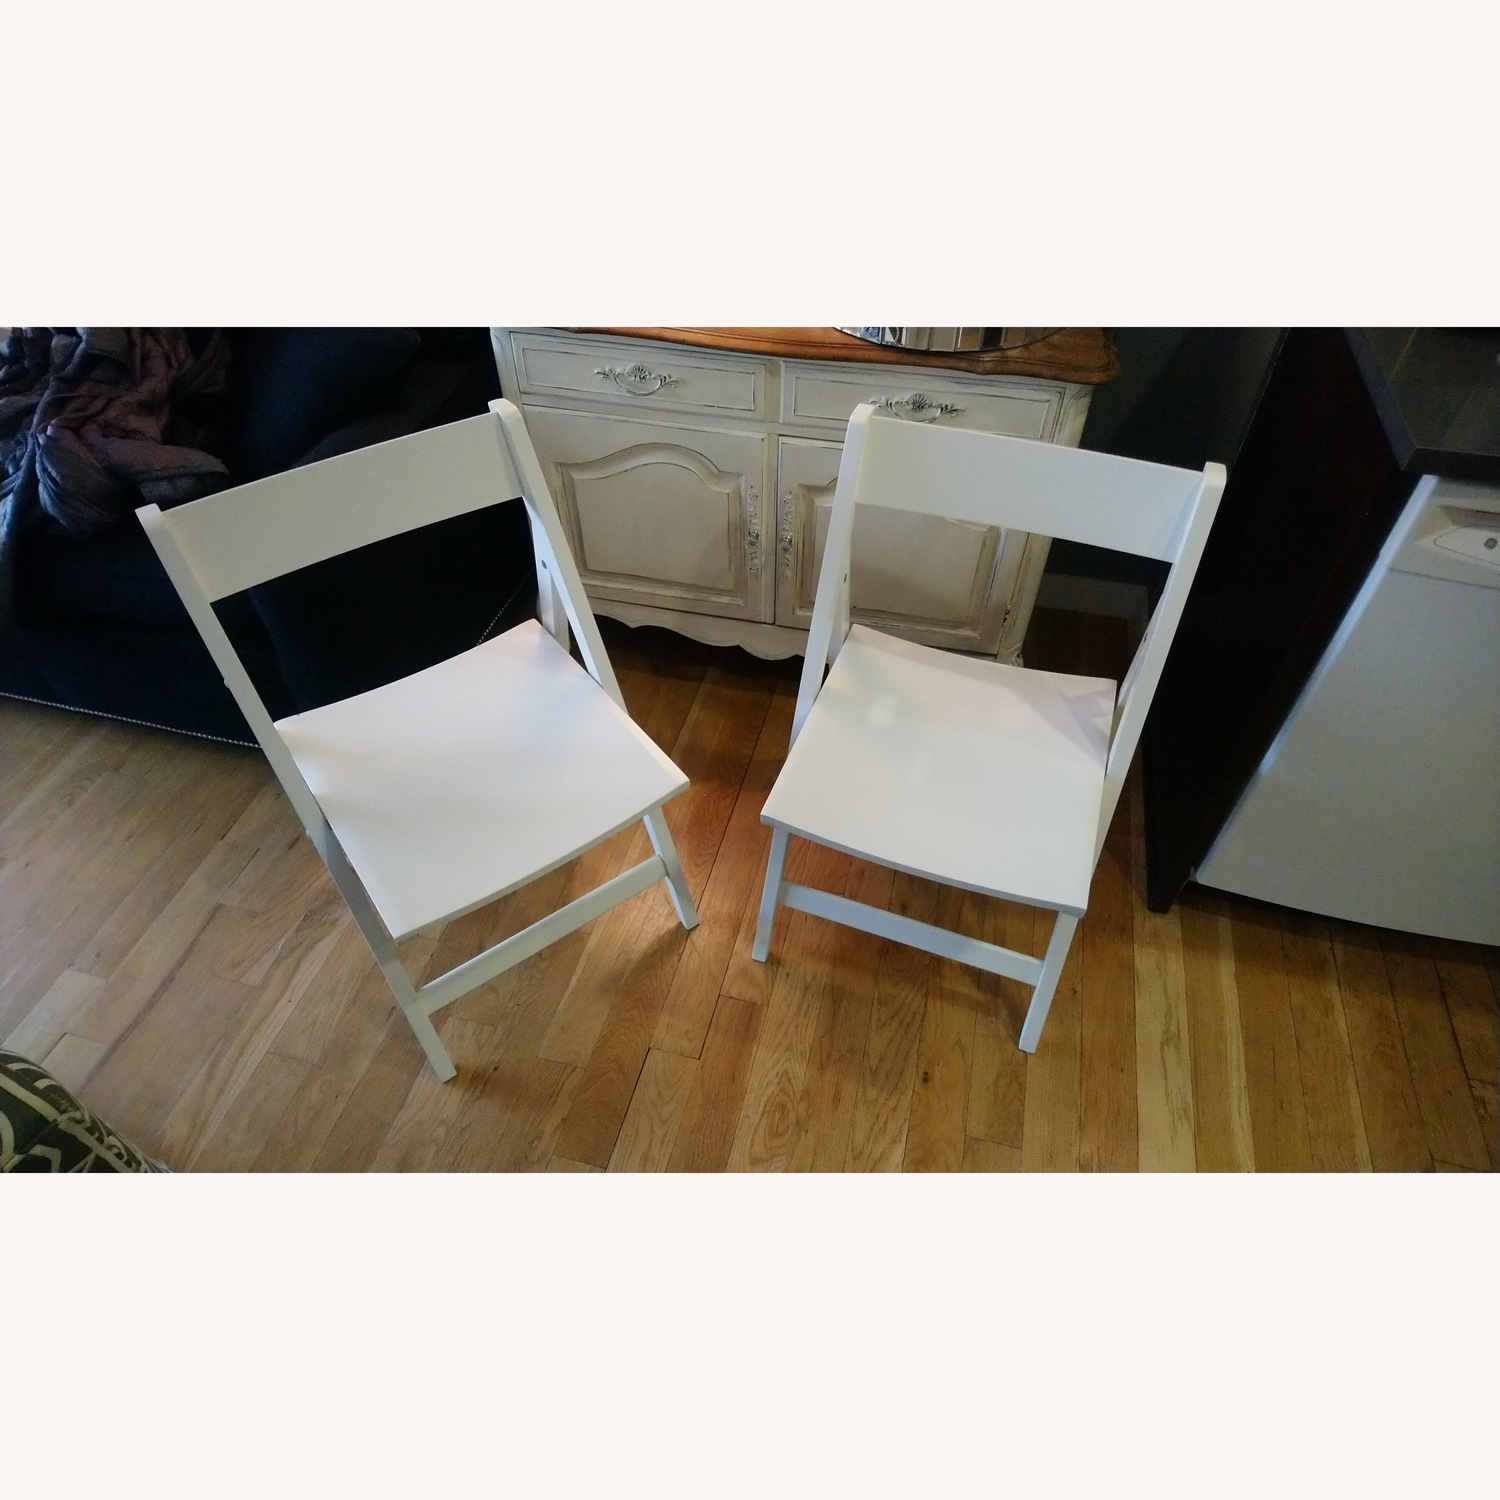 Two Rarely Used Folding Wooden Chairs - image-3